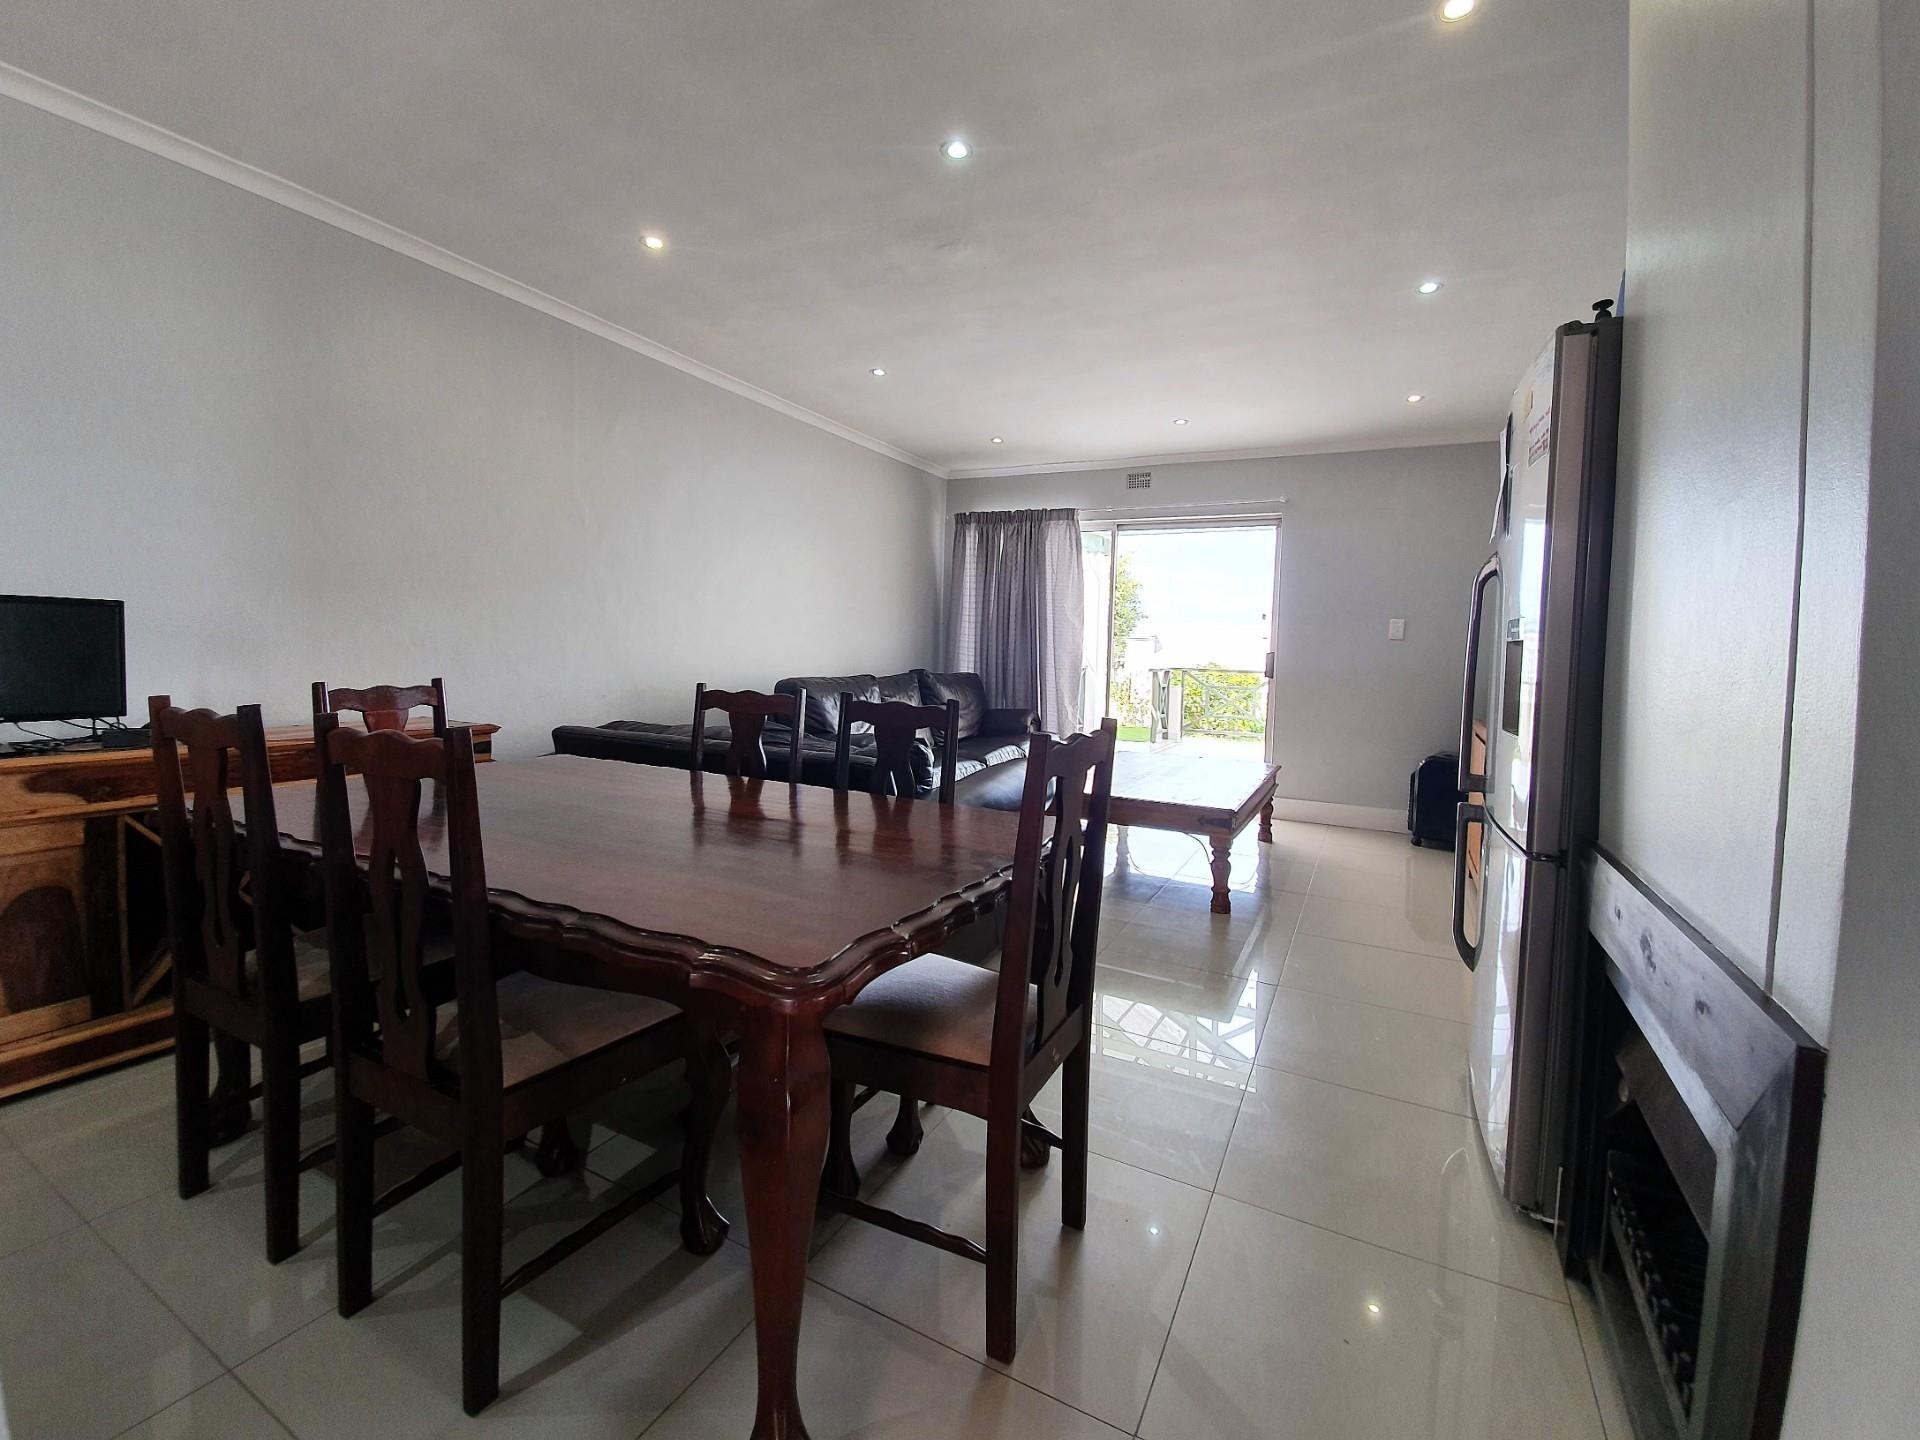 3 Bedroom Town house For Sale in Costa Sarda